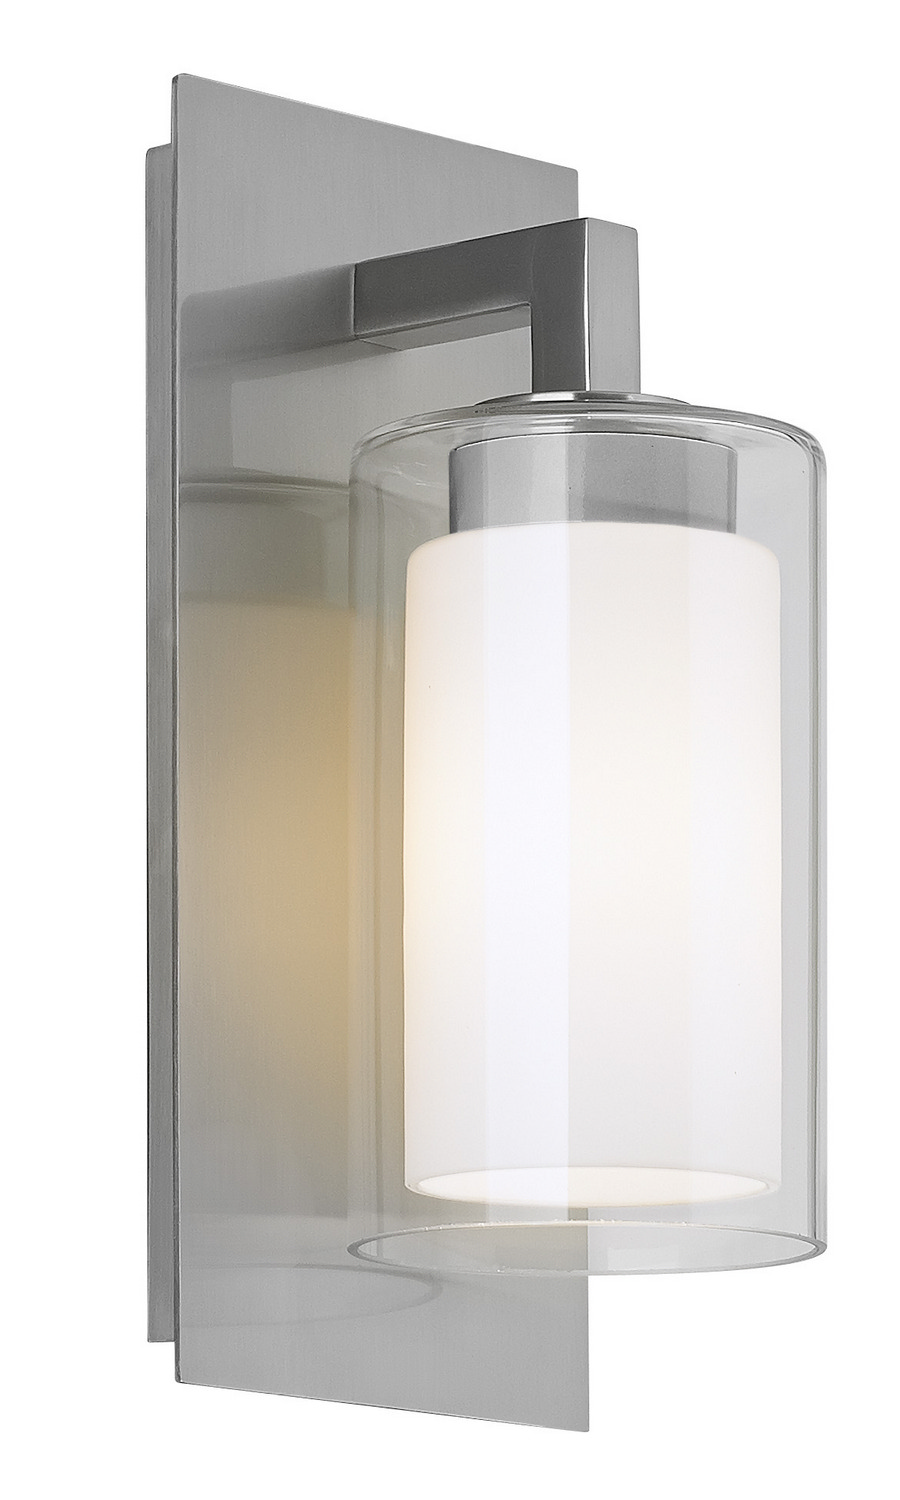 Feiss u0027Salingeru0027 Outdoor Lantern  sc 1 st  Yale Appliance Blog & Best Contemporary Outdoor Lighting (Reviews/Ratings/Prices)